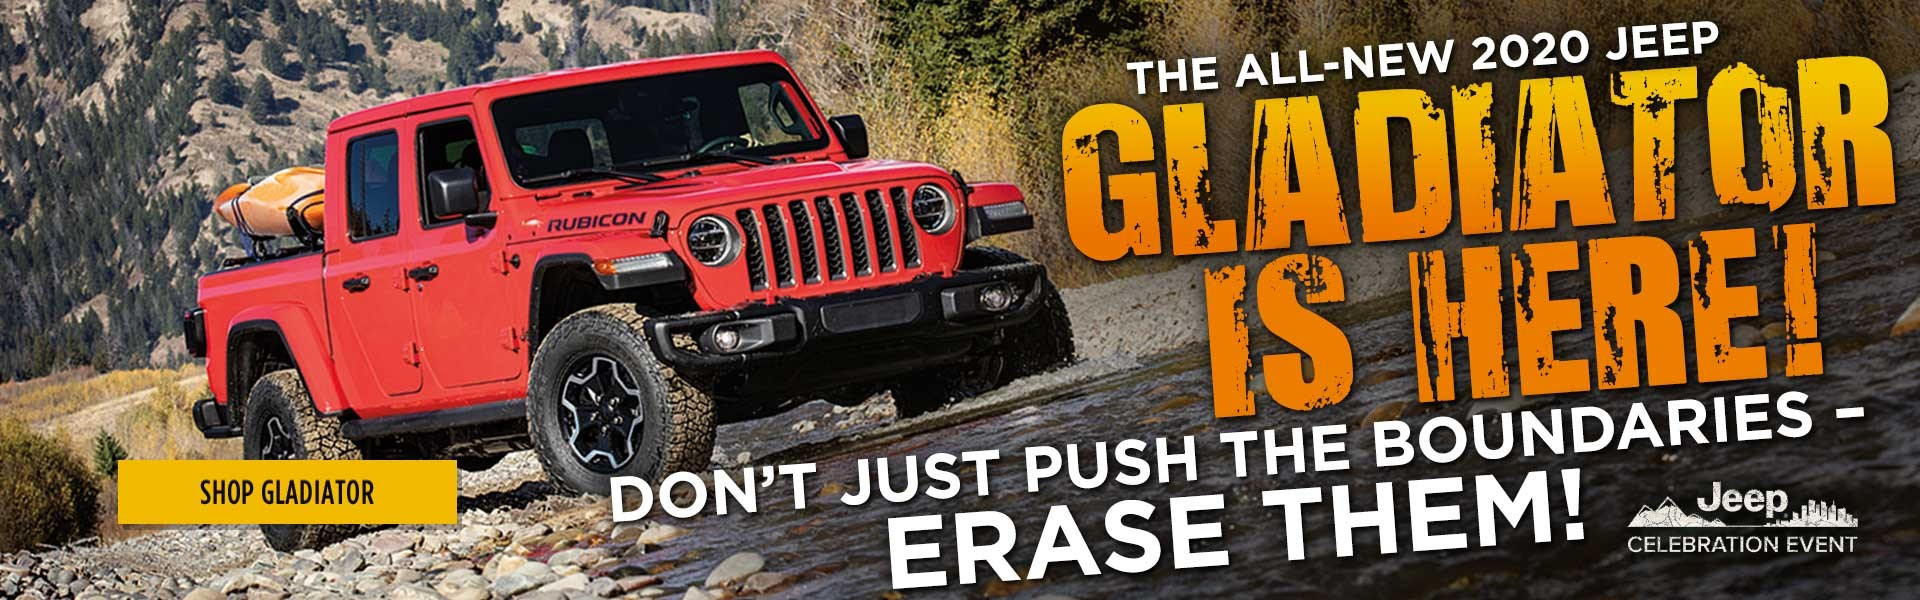 All New 2020 Jeep Gladiator Is Here